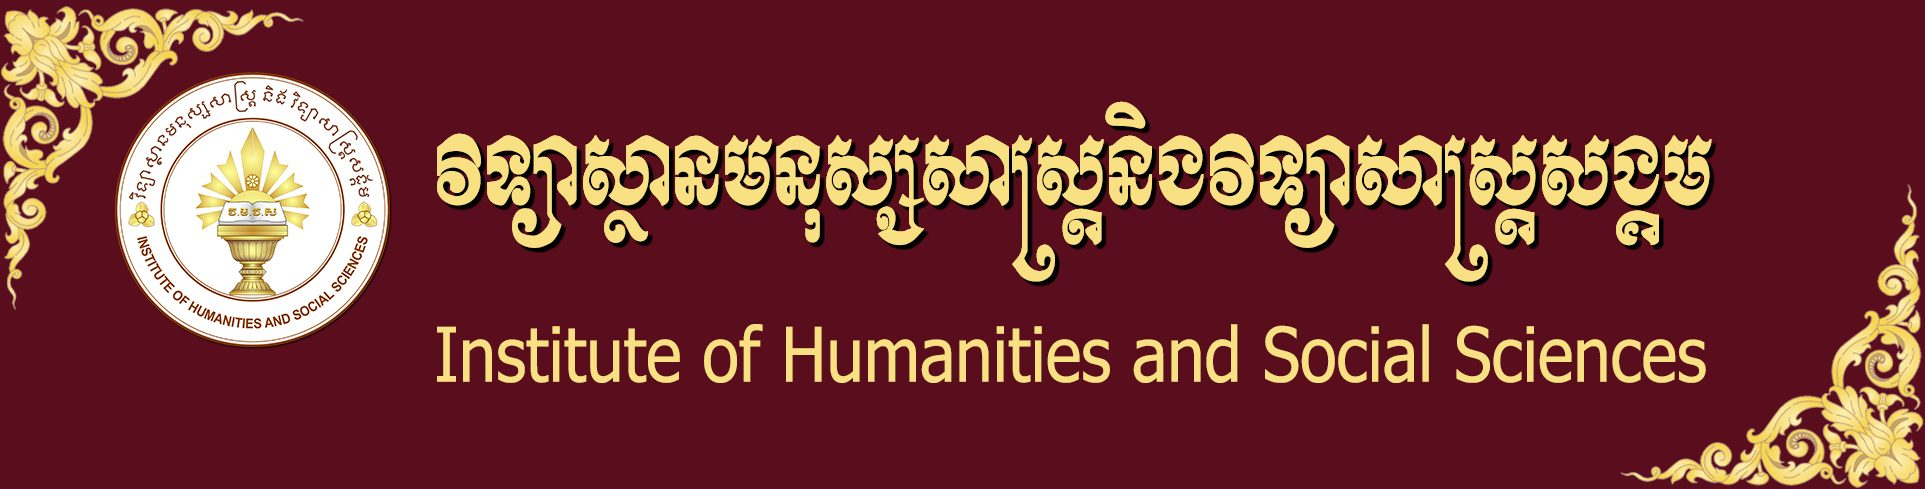 Institute of Humanities and Social Sciences